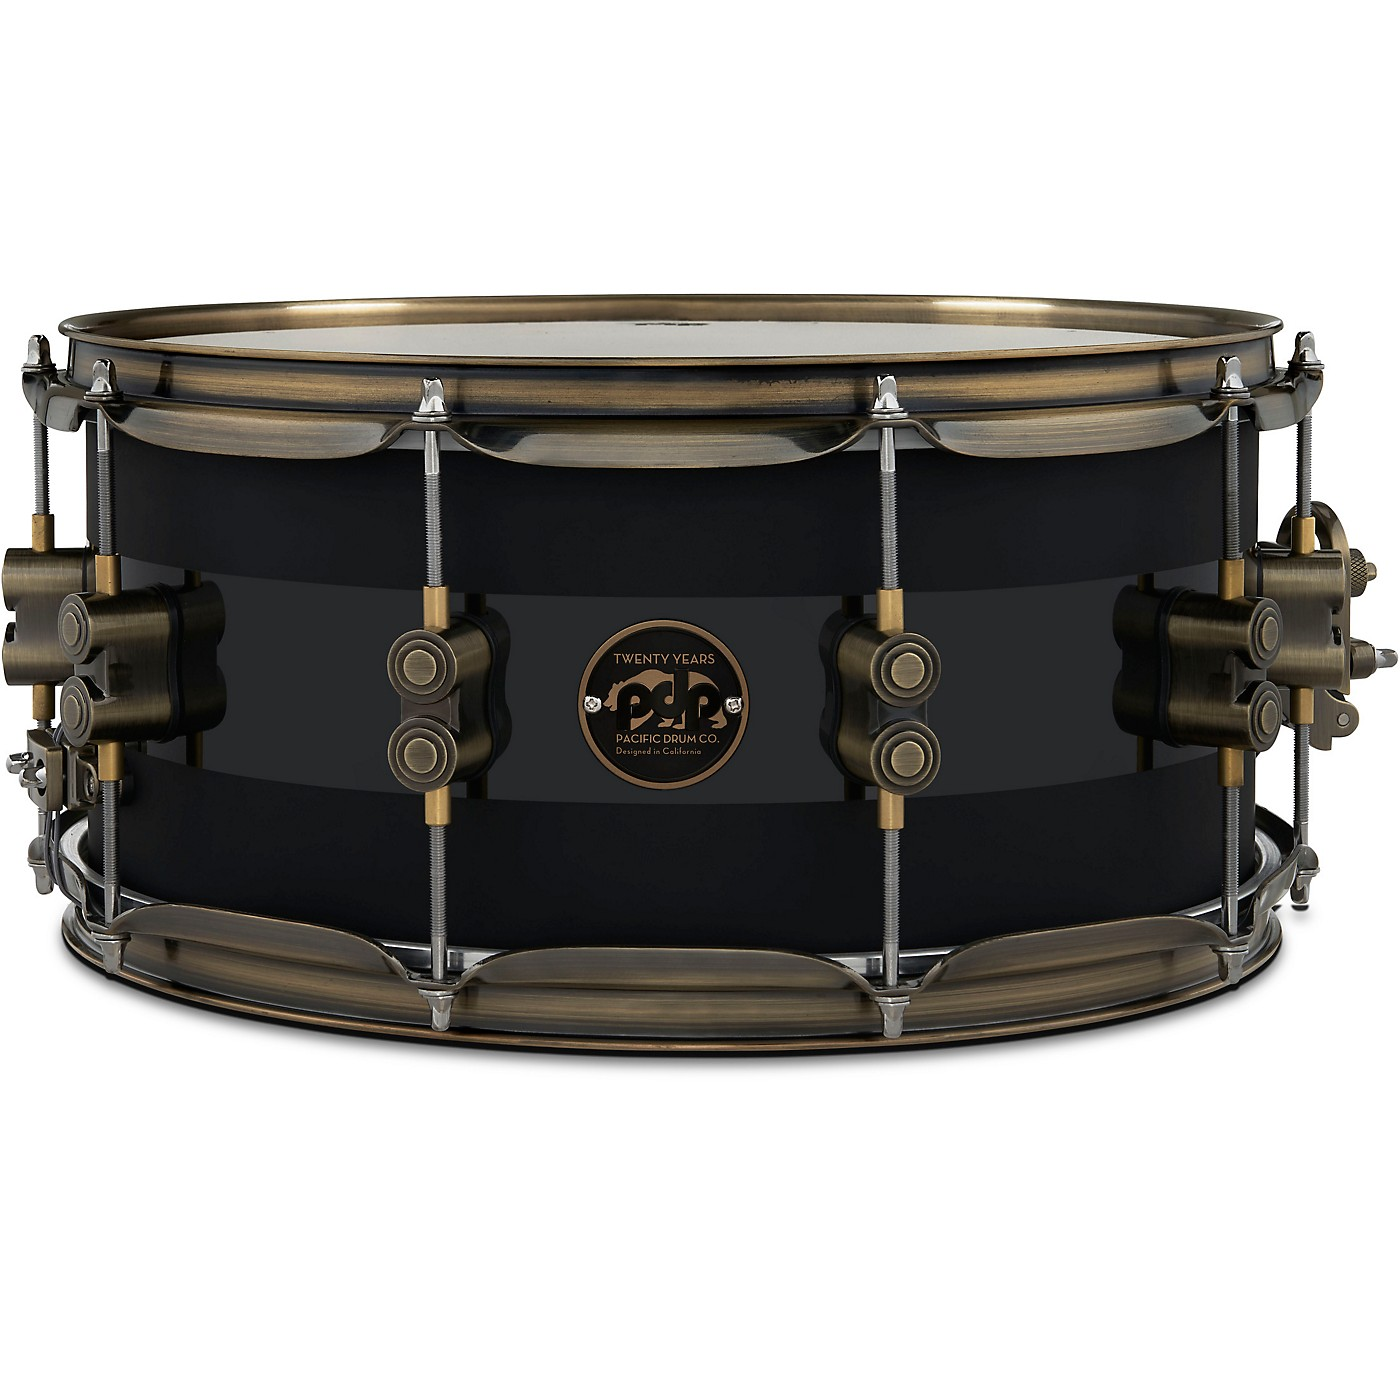 PDP by DW 20th Anniversary Snare Drum, Matte/Gloss Black, Antique Bronze Hardware thumbnail